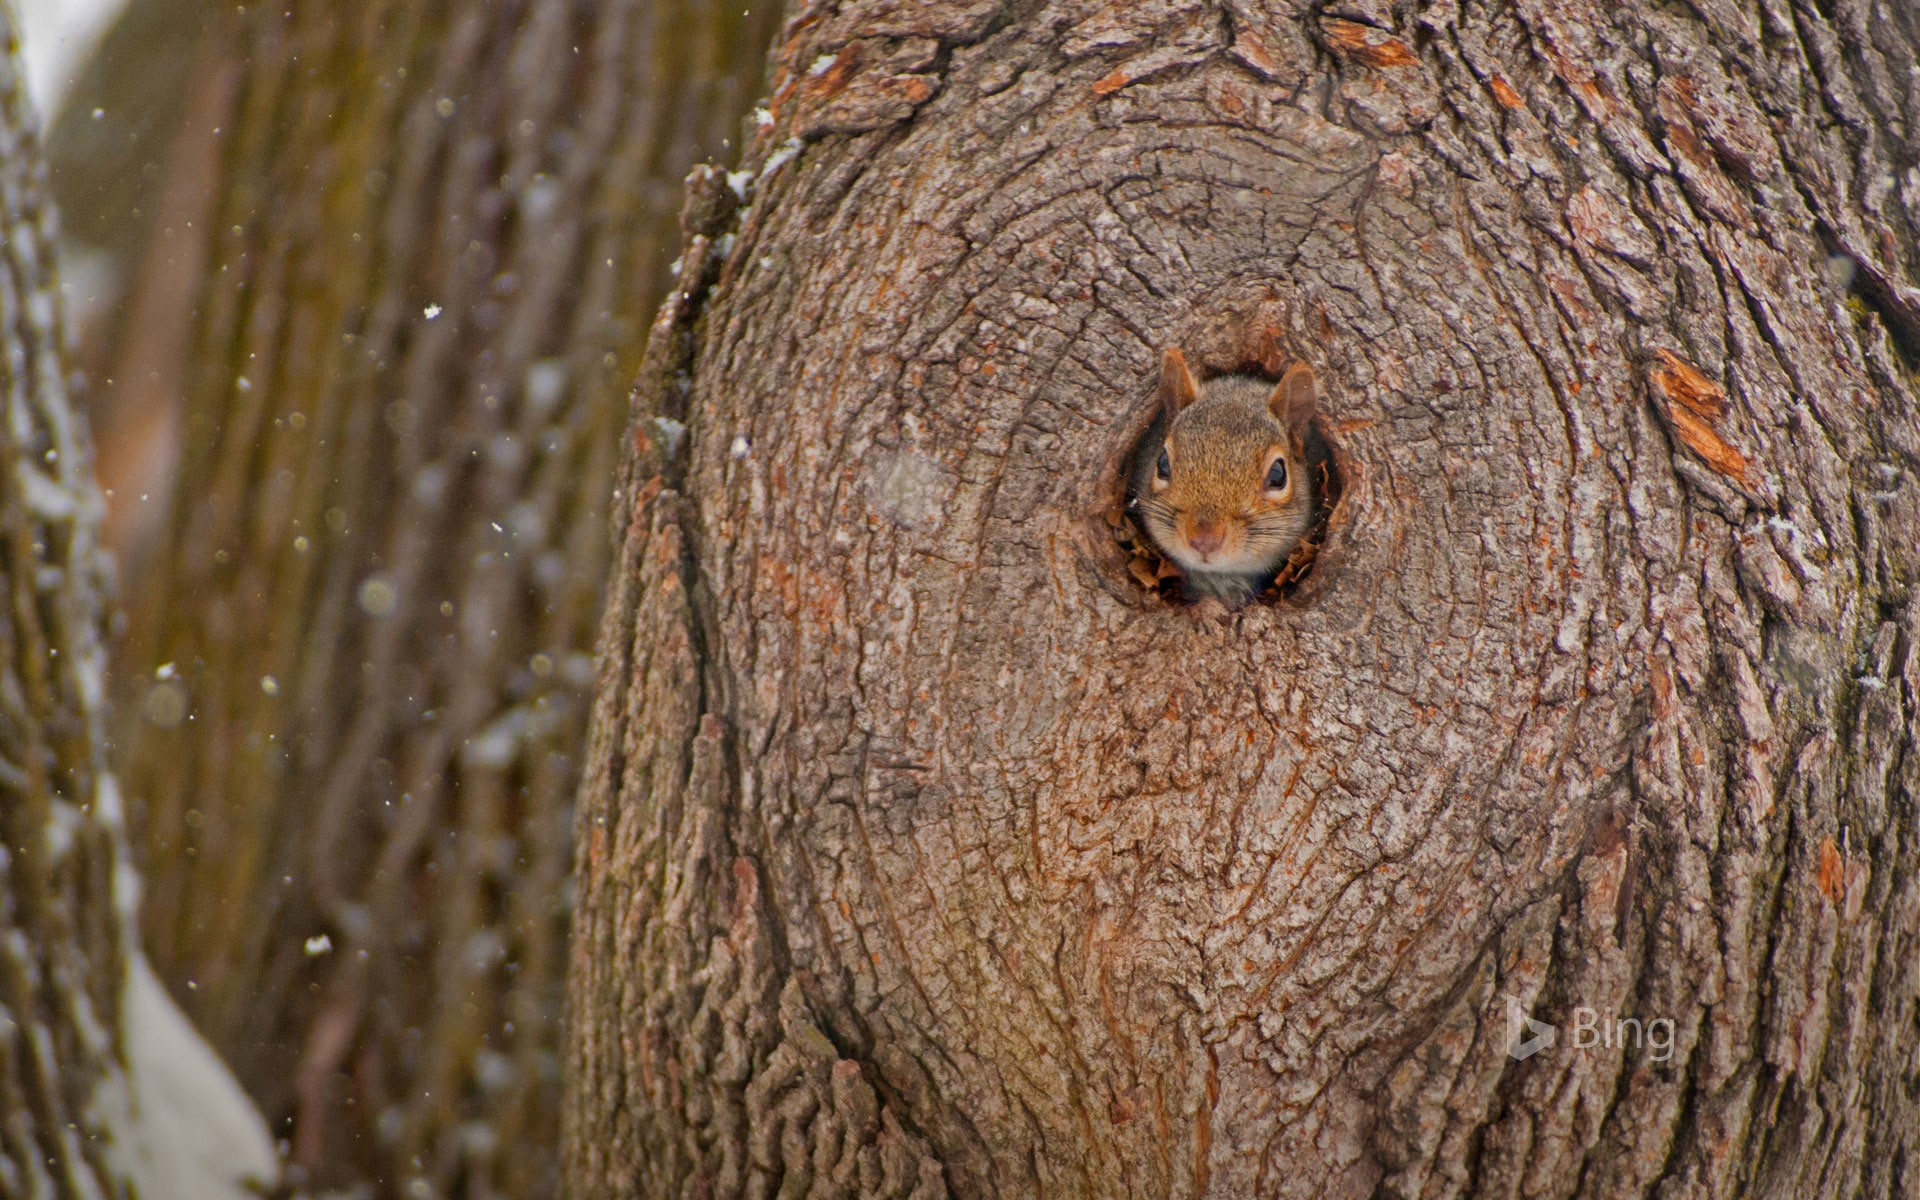 Eastern gray squirrel peeking out of its den